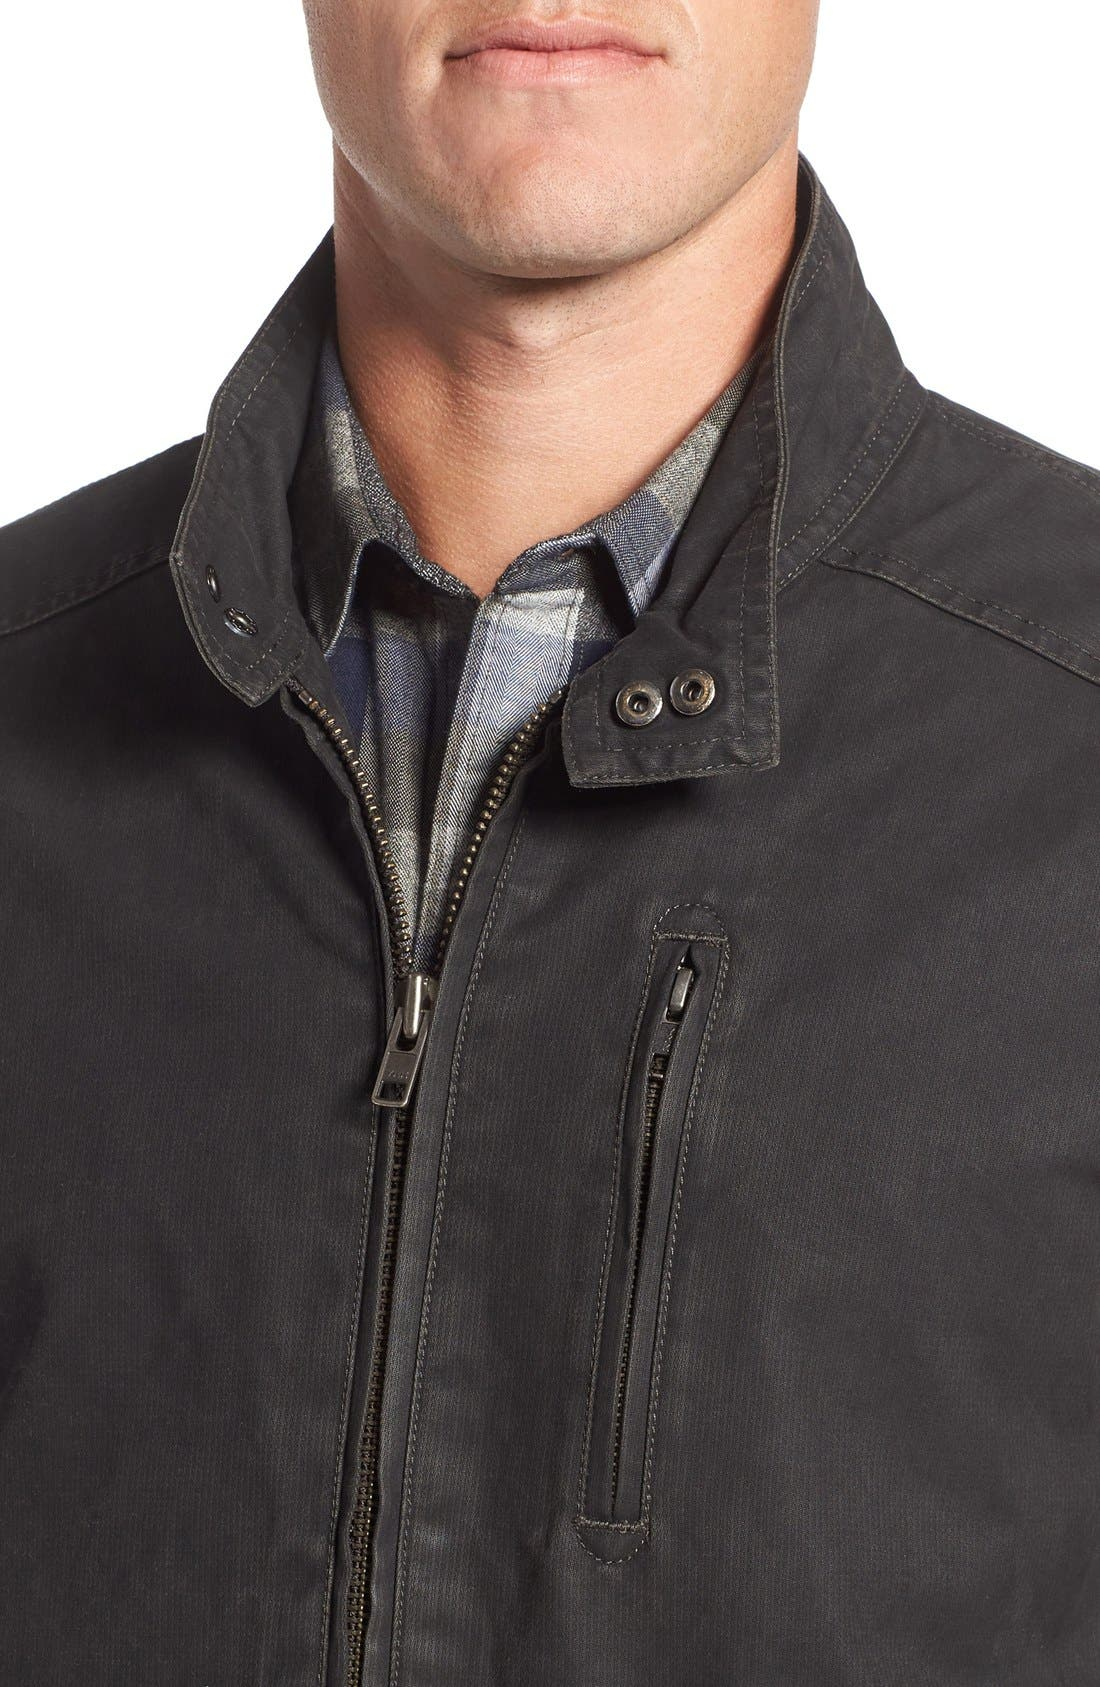 Jack Jacket,                             Alternate thumbnail 3, color,                             BRACKEN/ CHARCOAL